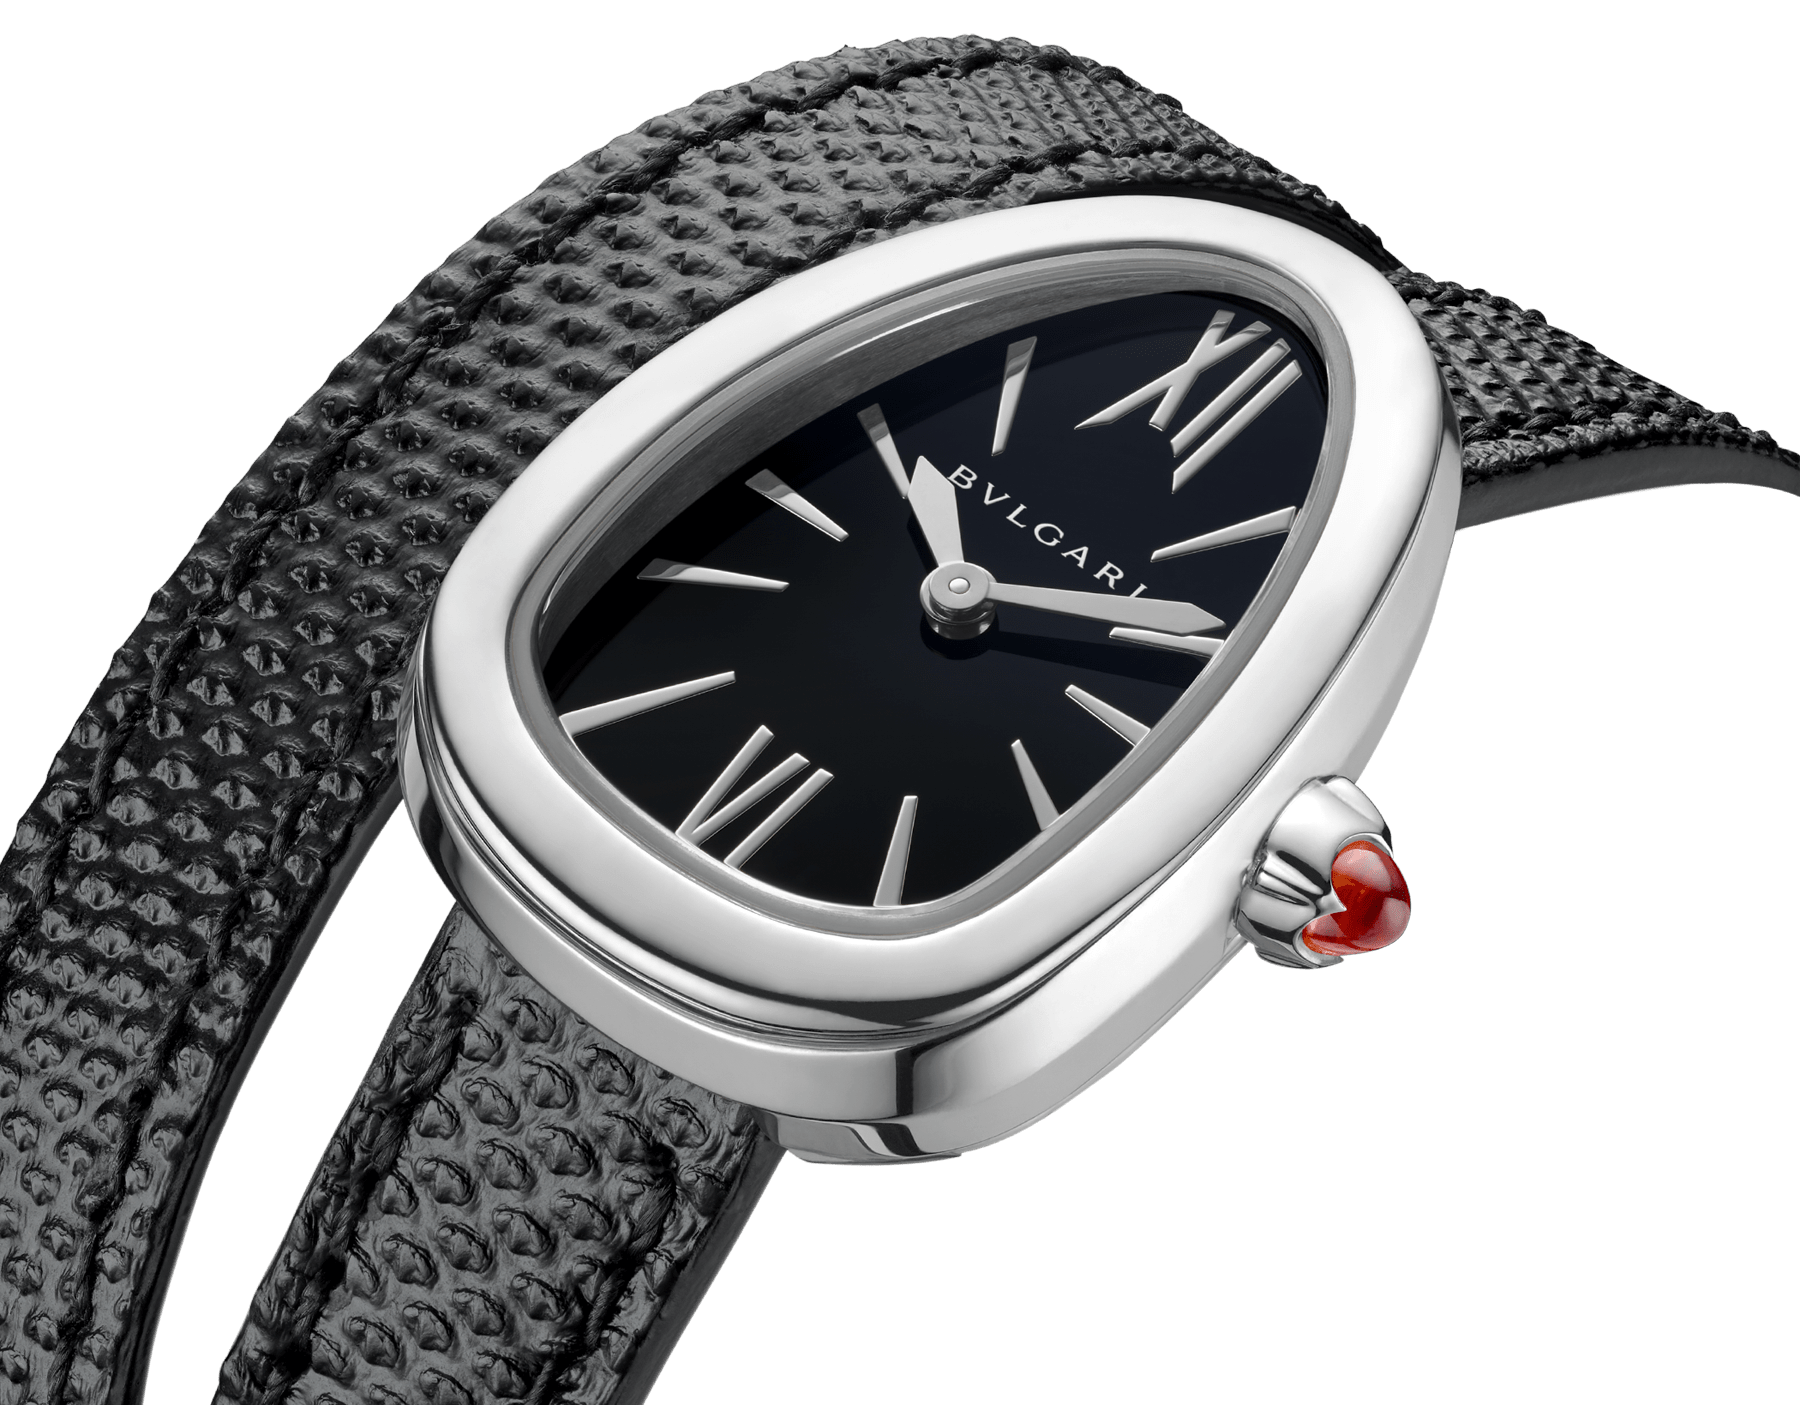 Serpenti watch with stainless steel case, black lacquered dial and interchangeable double spiral bracelet in black karung leather. 102782 image 3